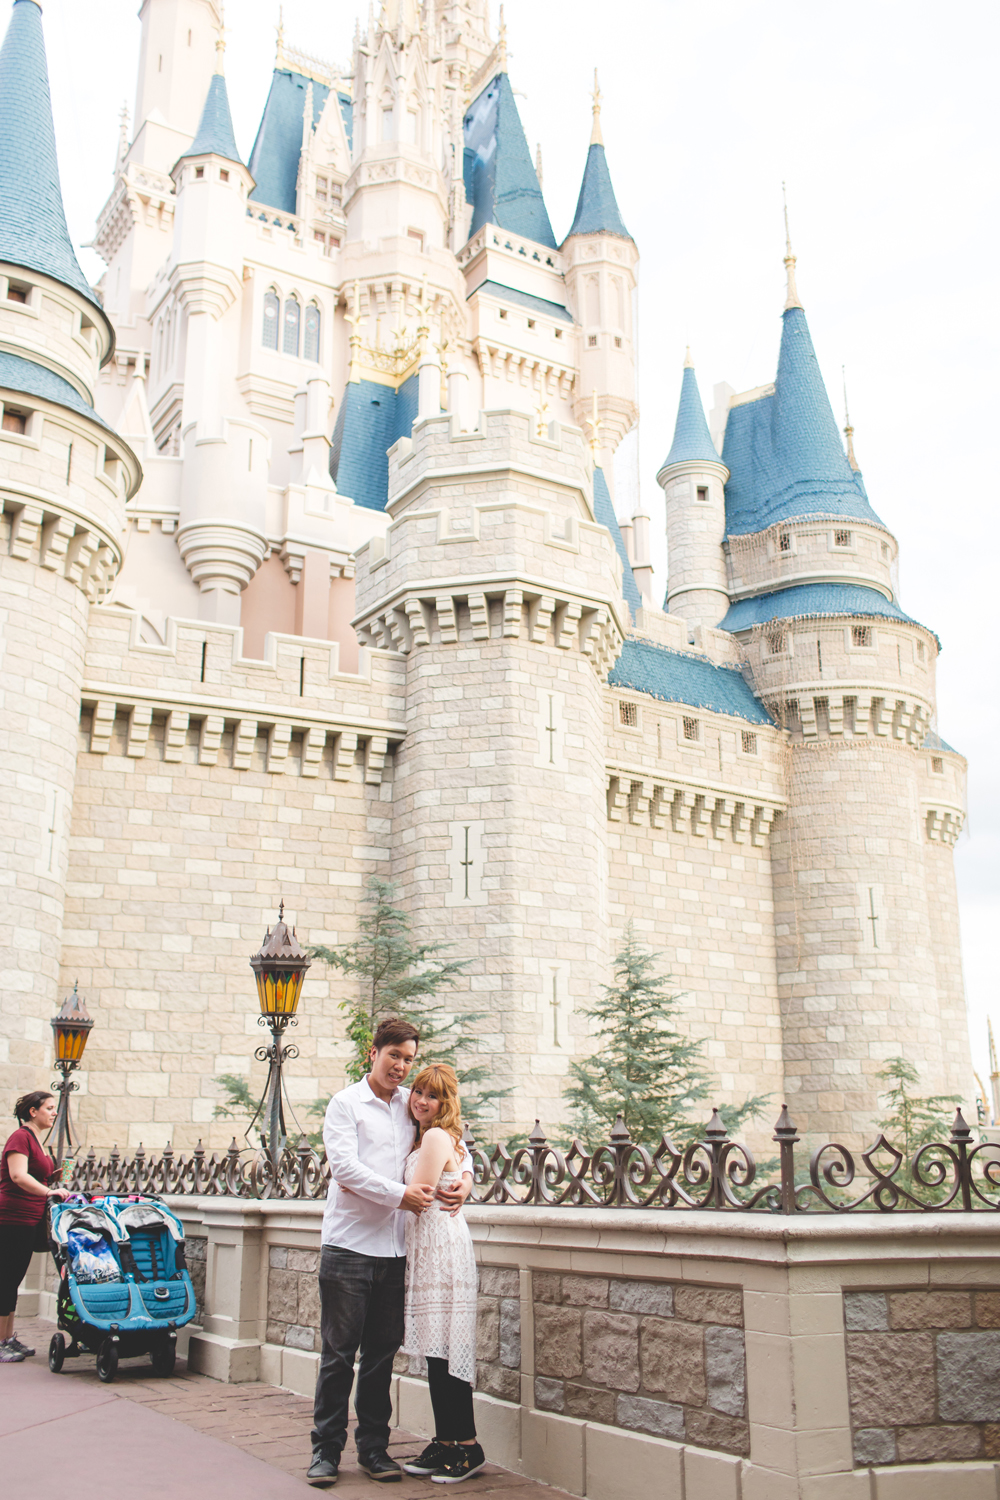 Disney Honeymoon session - Disney Engagement Photos - Disney Wedding Photographer - Destination Orlando Wedding Photographer - Jaime DiOrio (40).jpg